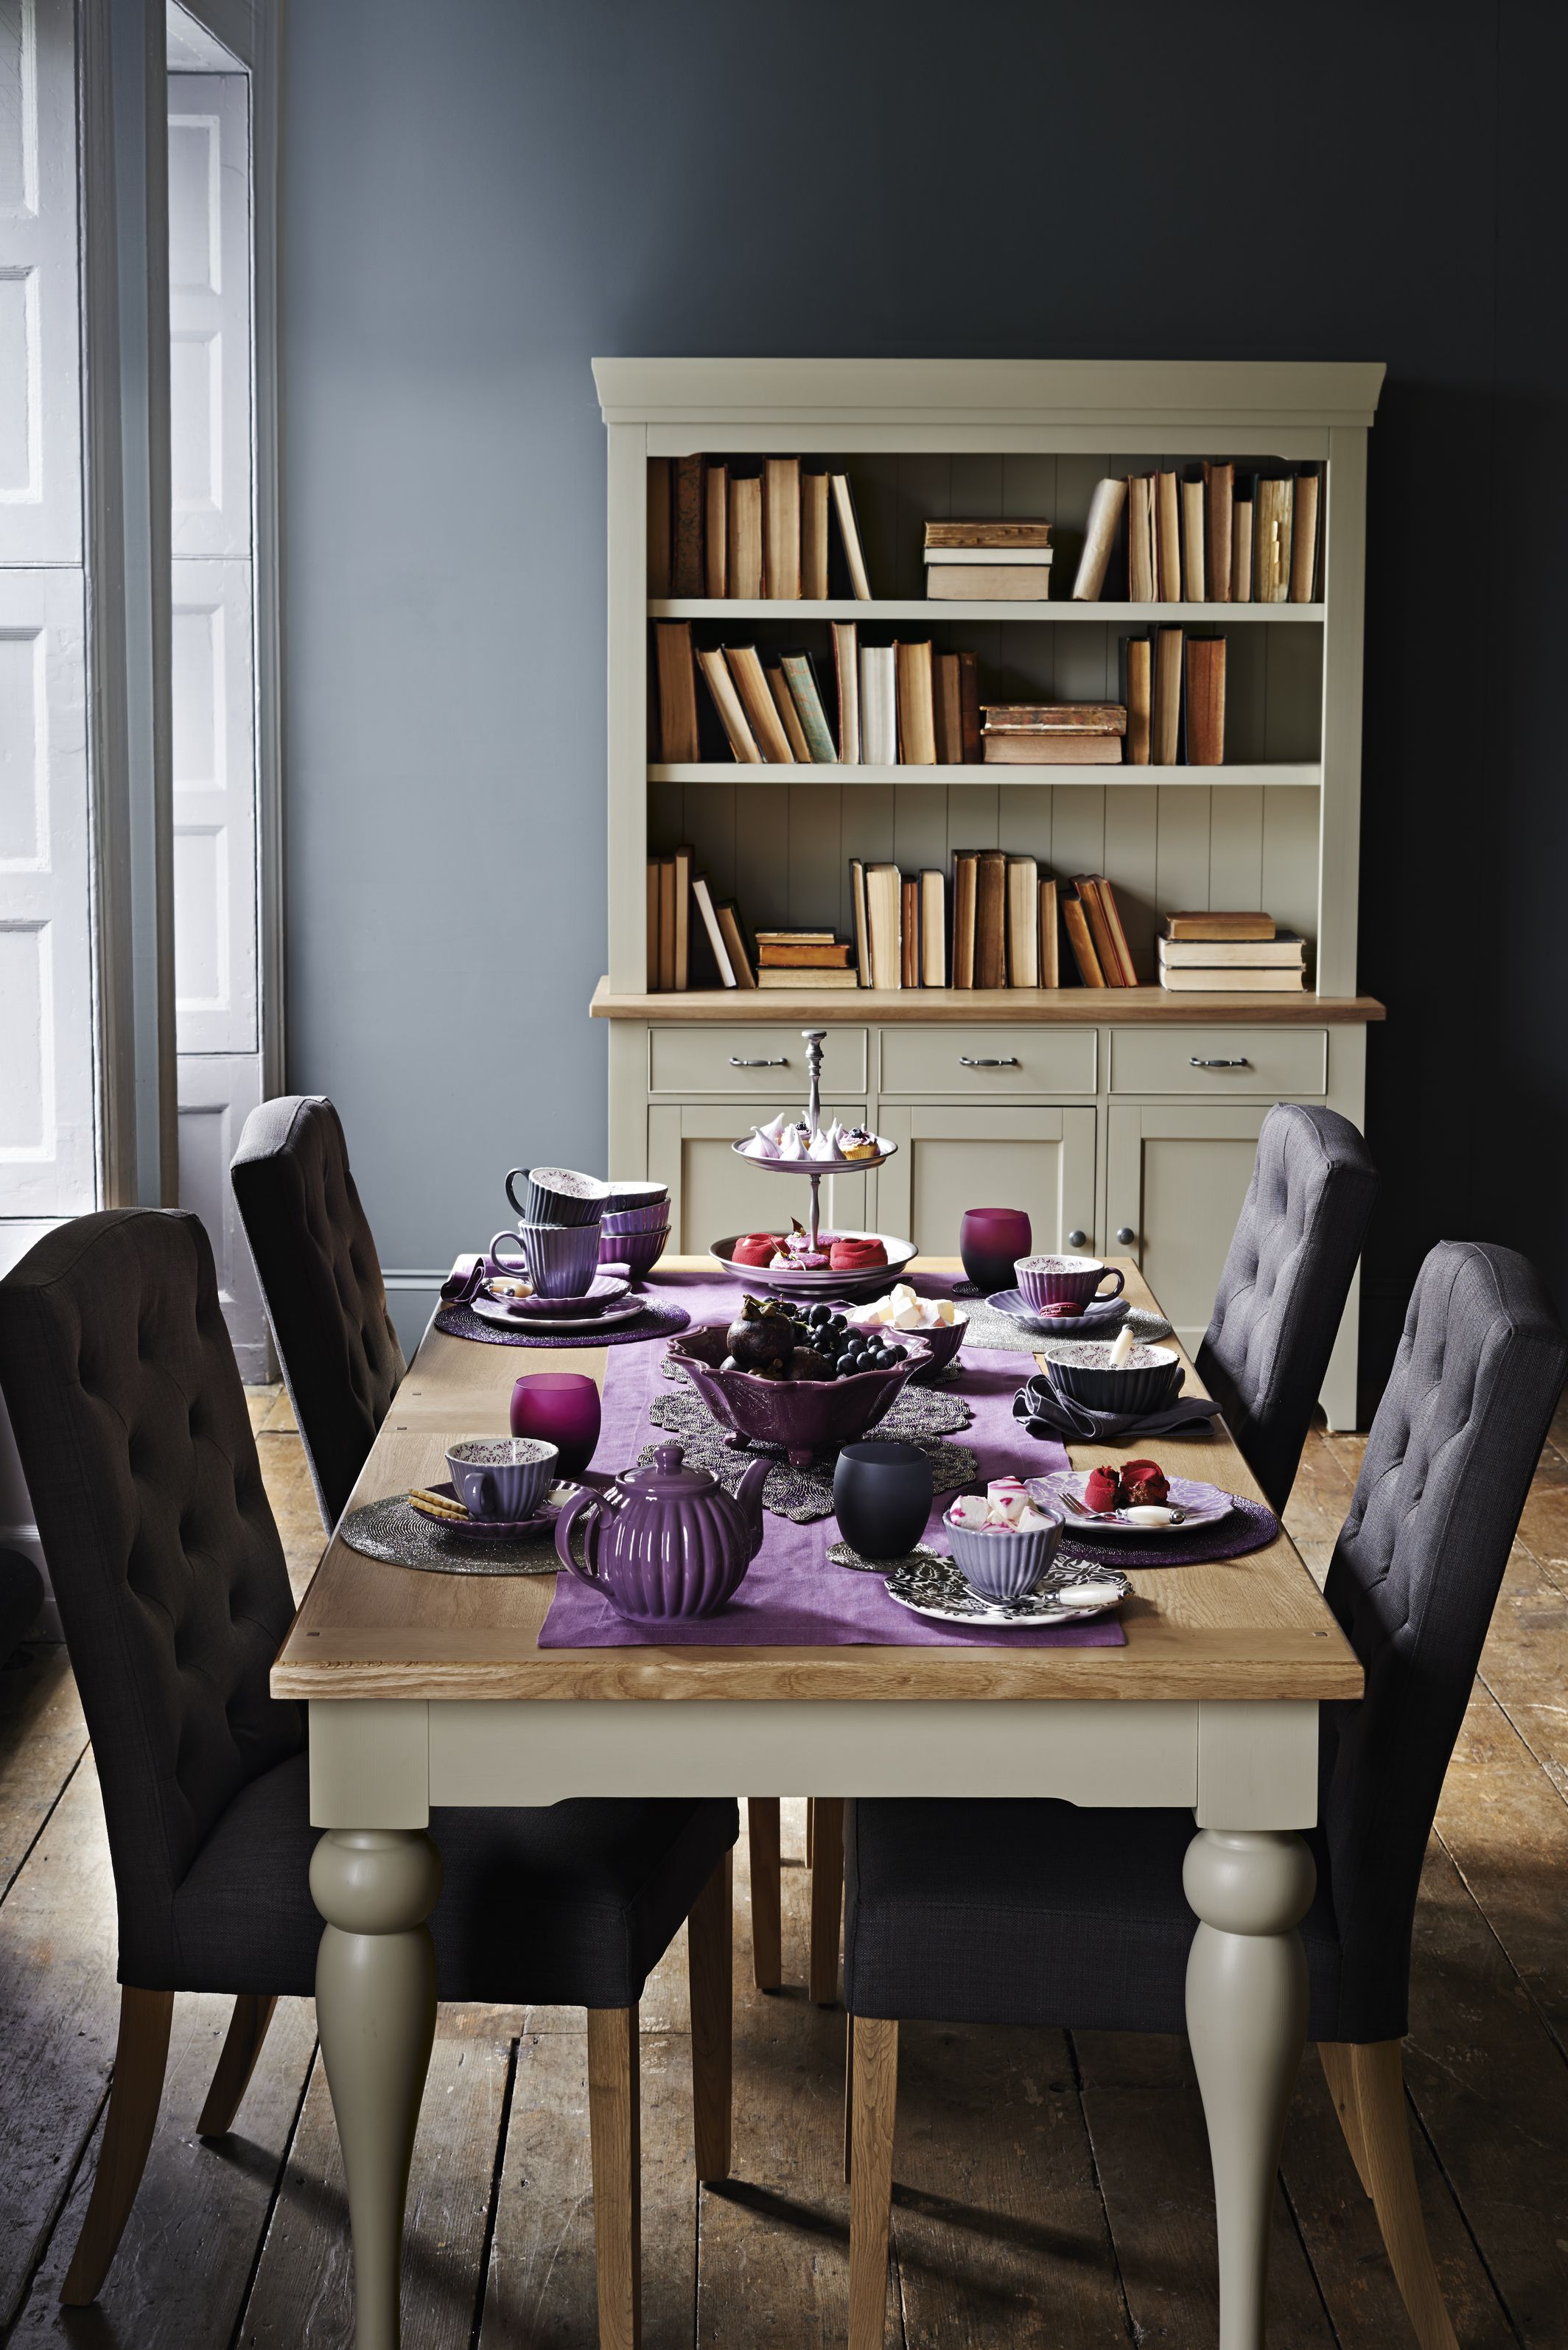 Dinning room set home purple colour set eat home decor